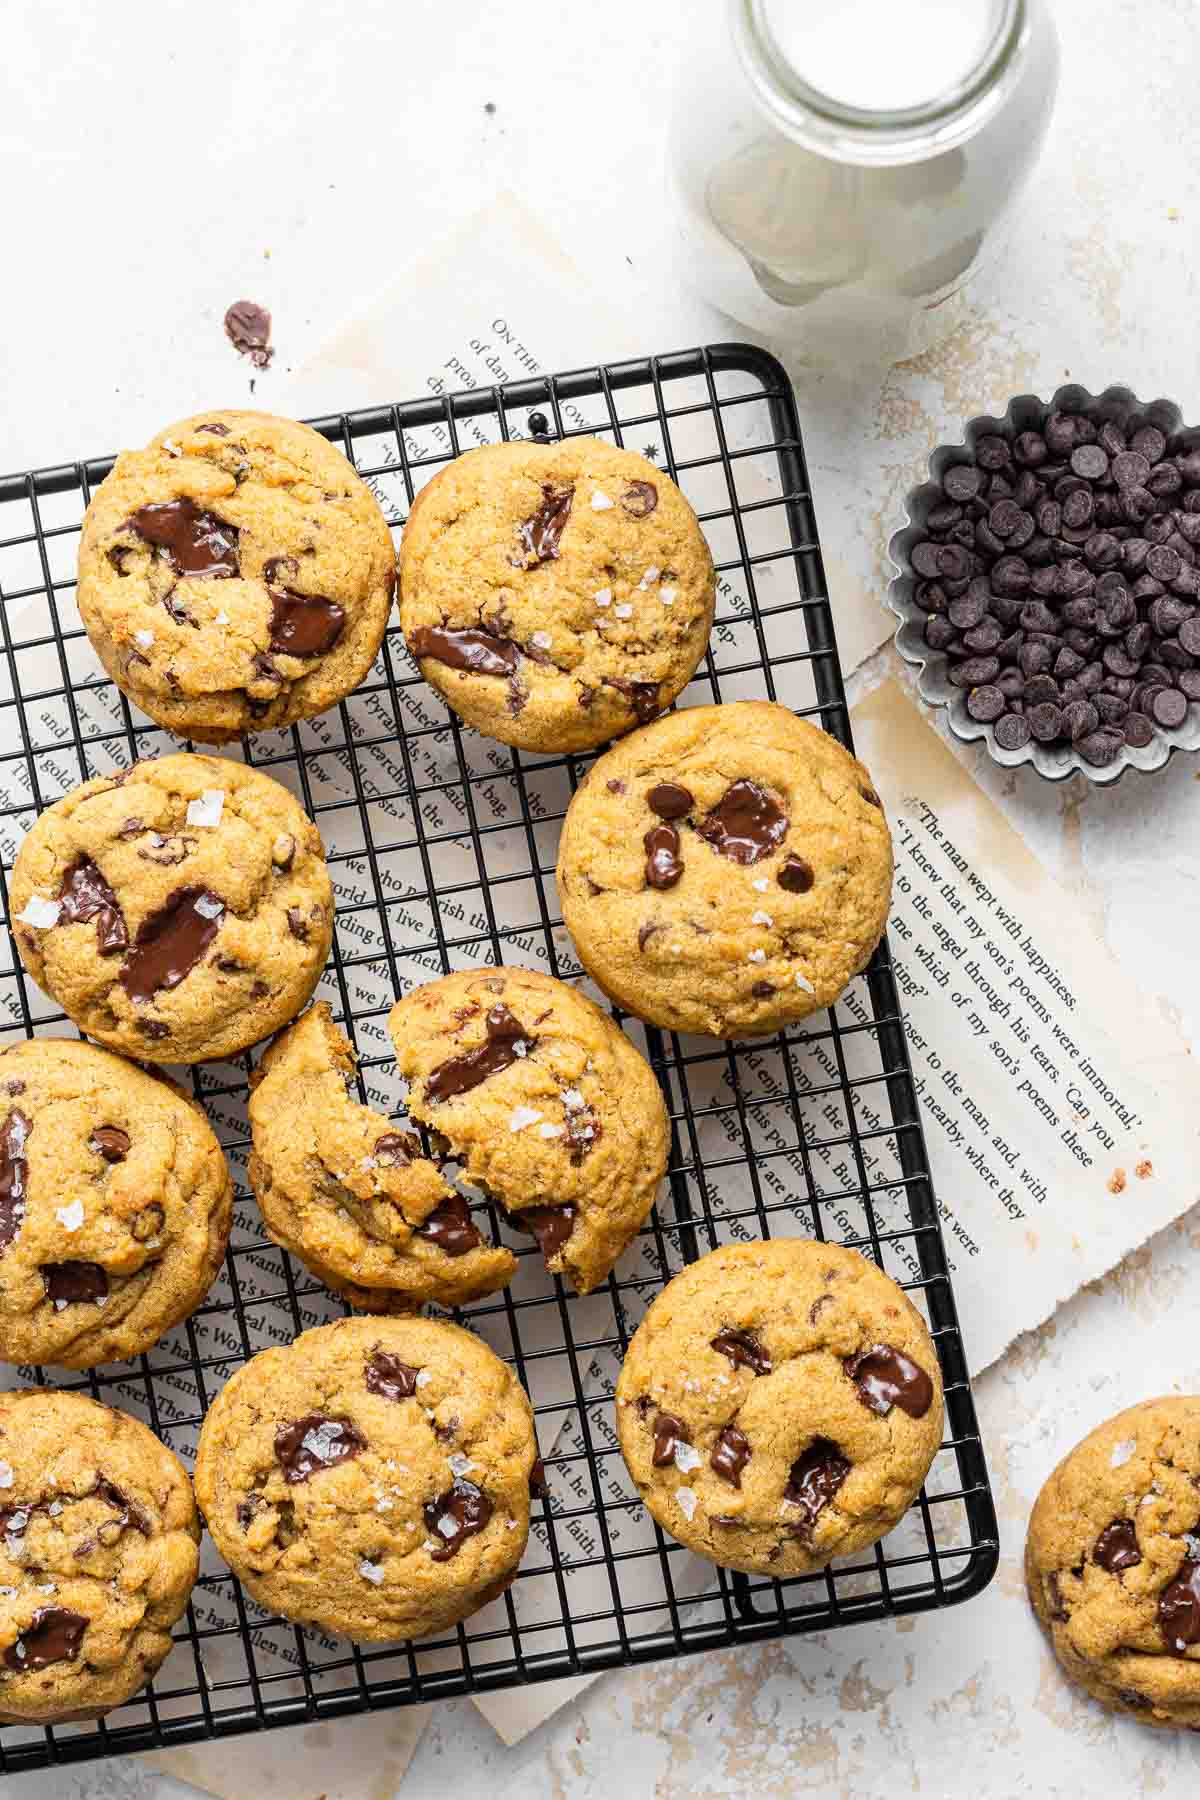 Cookies on a cool rack with milk and chocolate chips on the side.